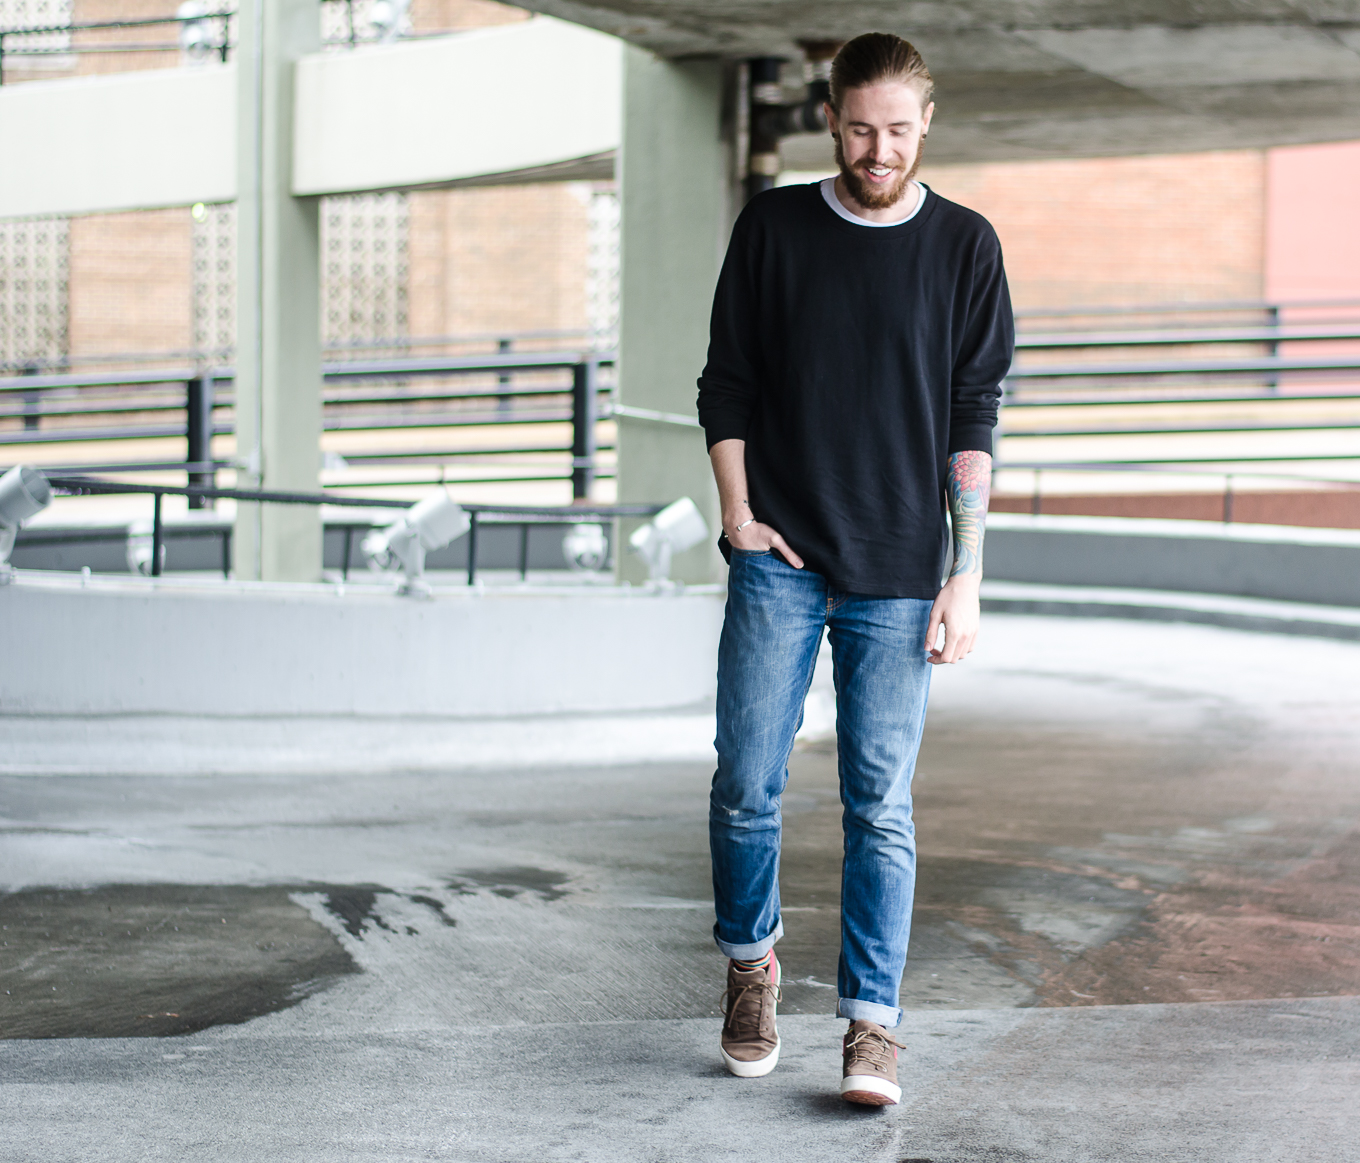 The Kentucky Gent, a Louisville, Kentucky based men's fashion and lifestyle blogger, shares his capsule wardrobe on thekentuckygent.com.